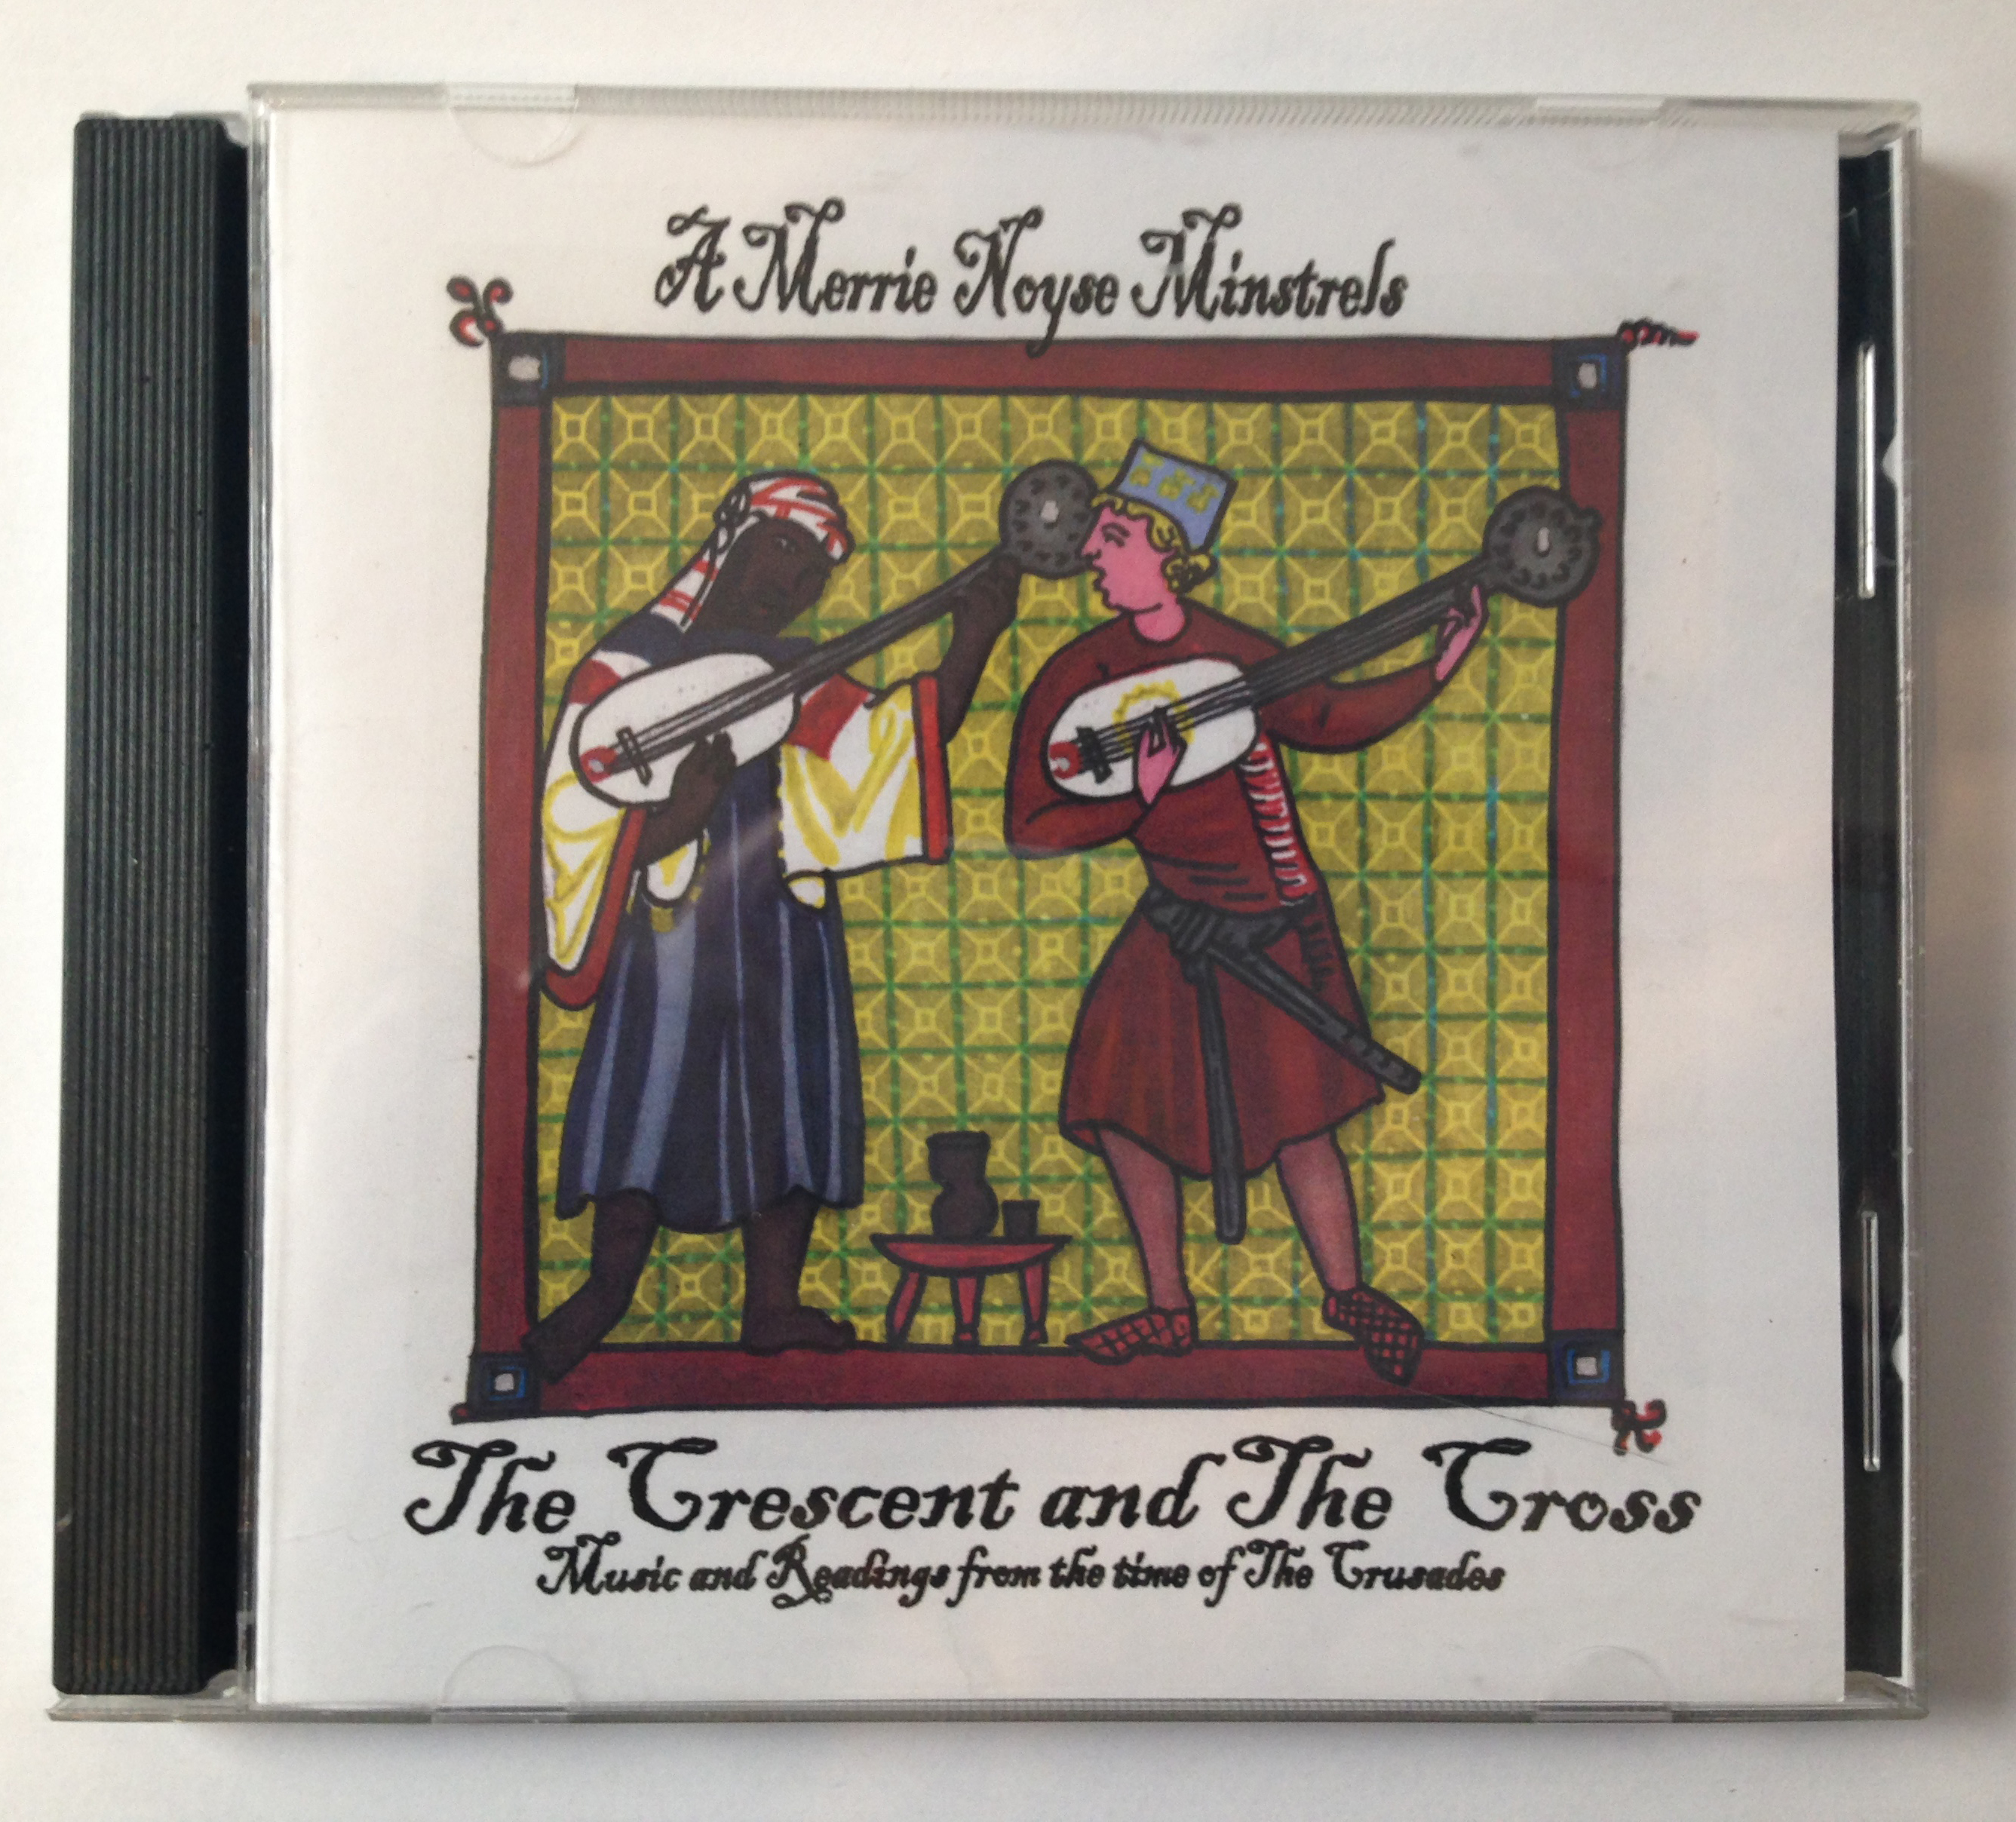 The Crescent and The Cross CD